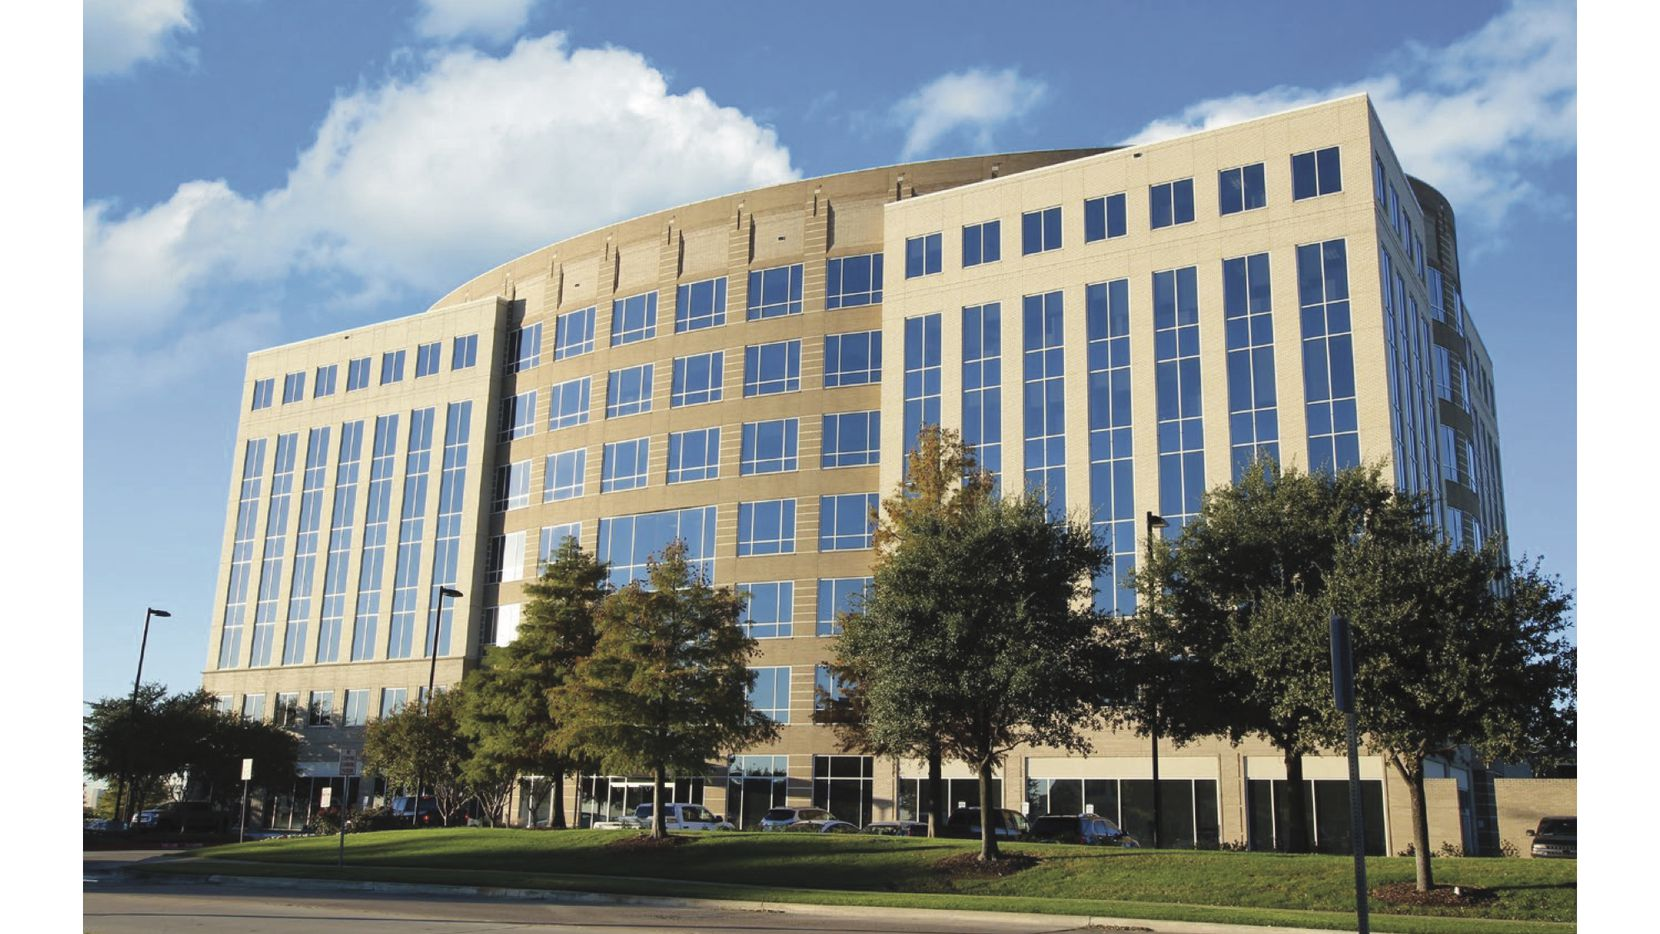 Pei Wei Asian Diner has rented offices for its headquarters in the Las Colinas Highlands building in Irving.